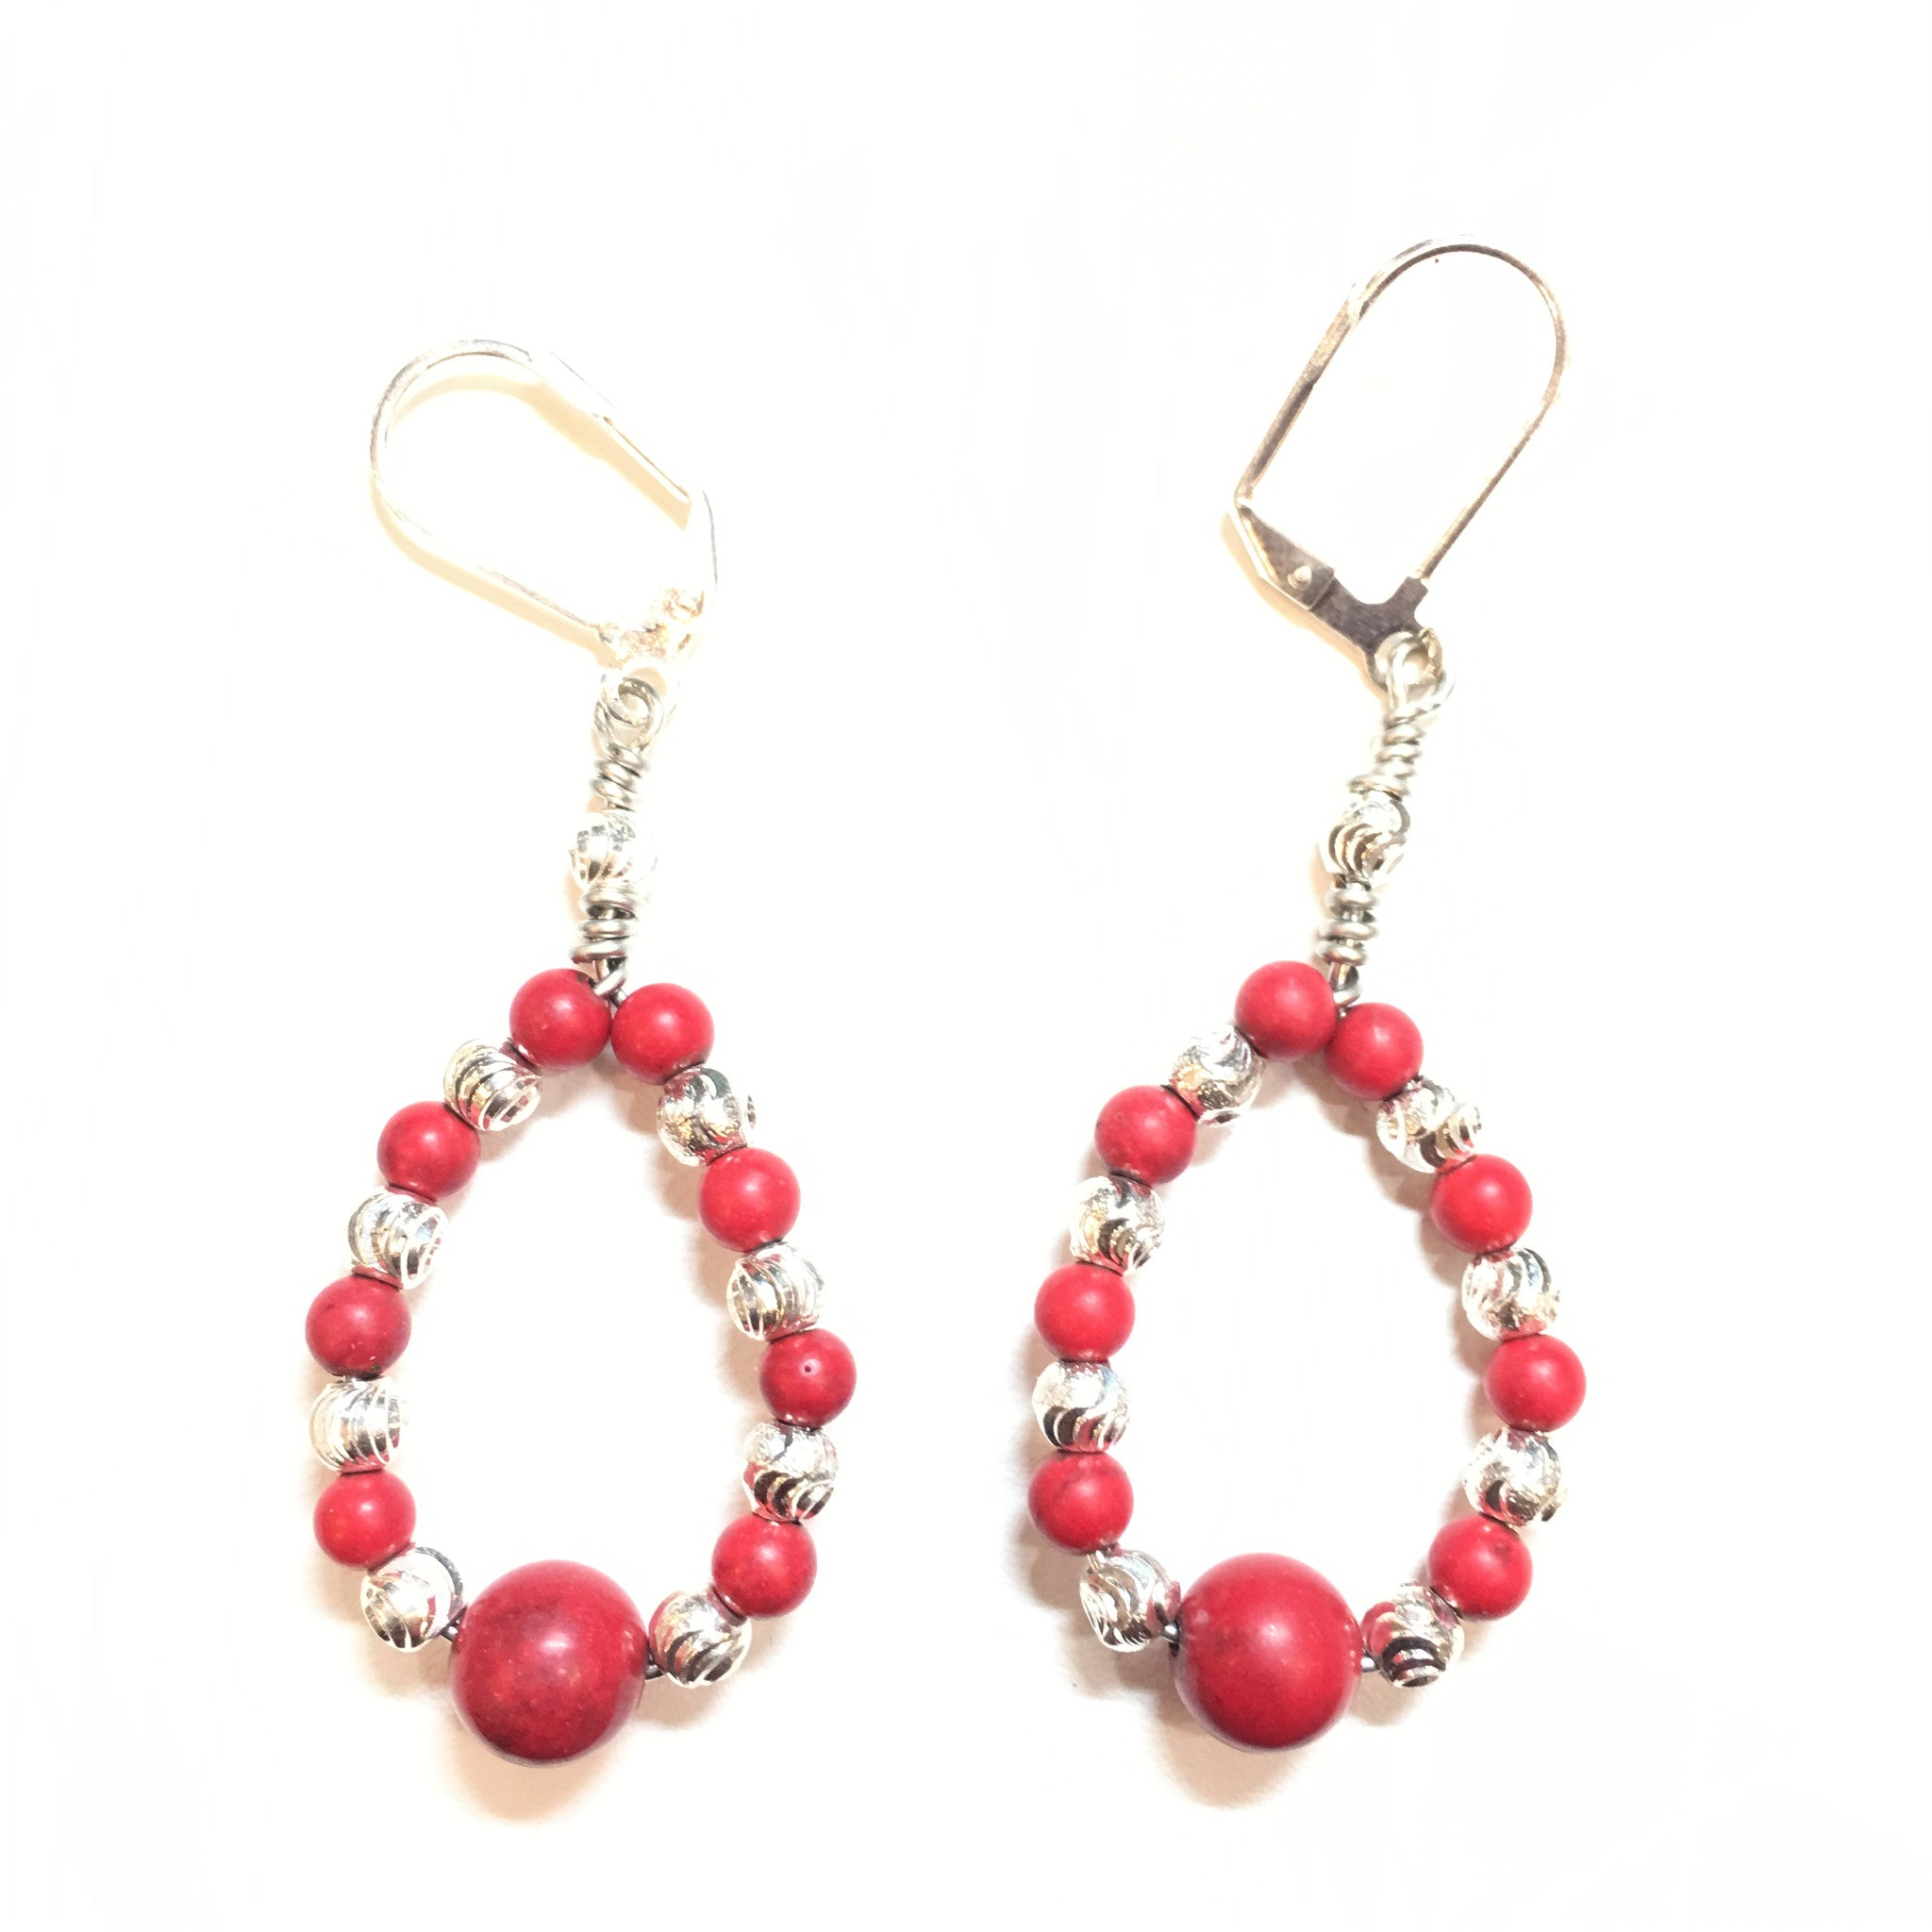 Red Coral and Silver Teardrop Earring - Real Chic Boutique  - 2